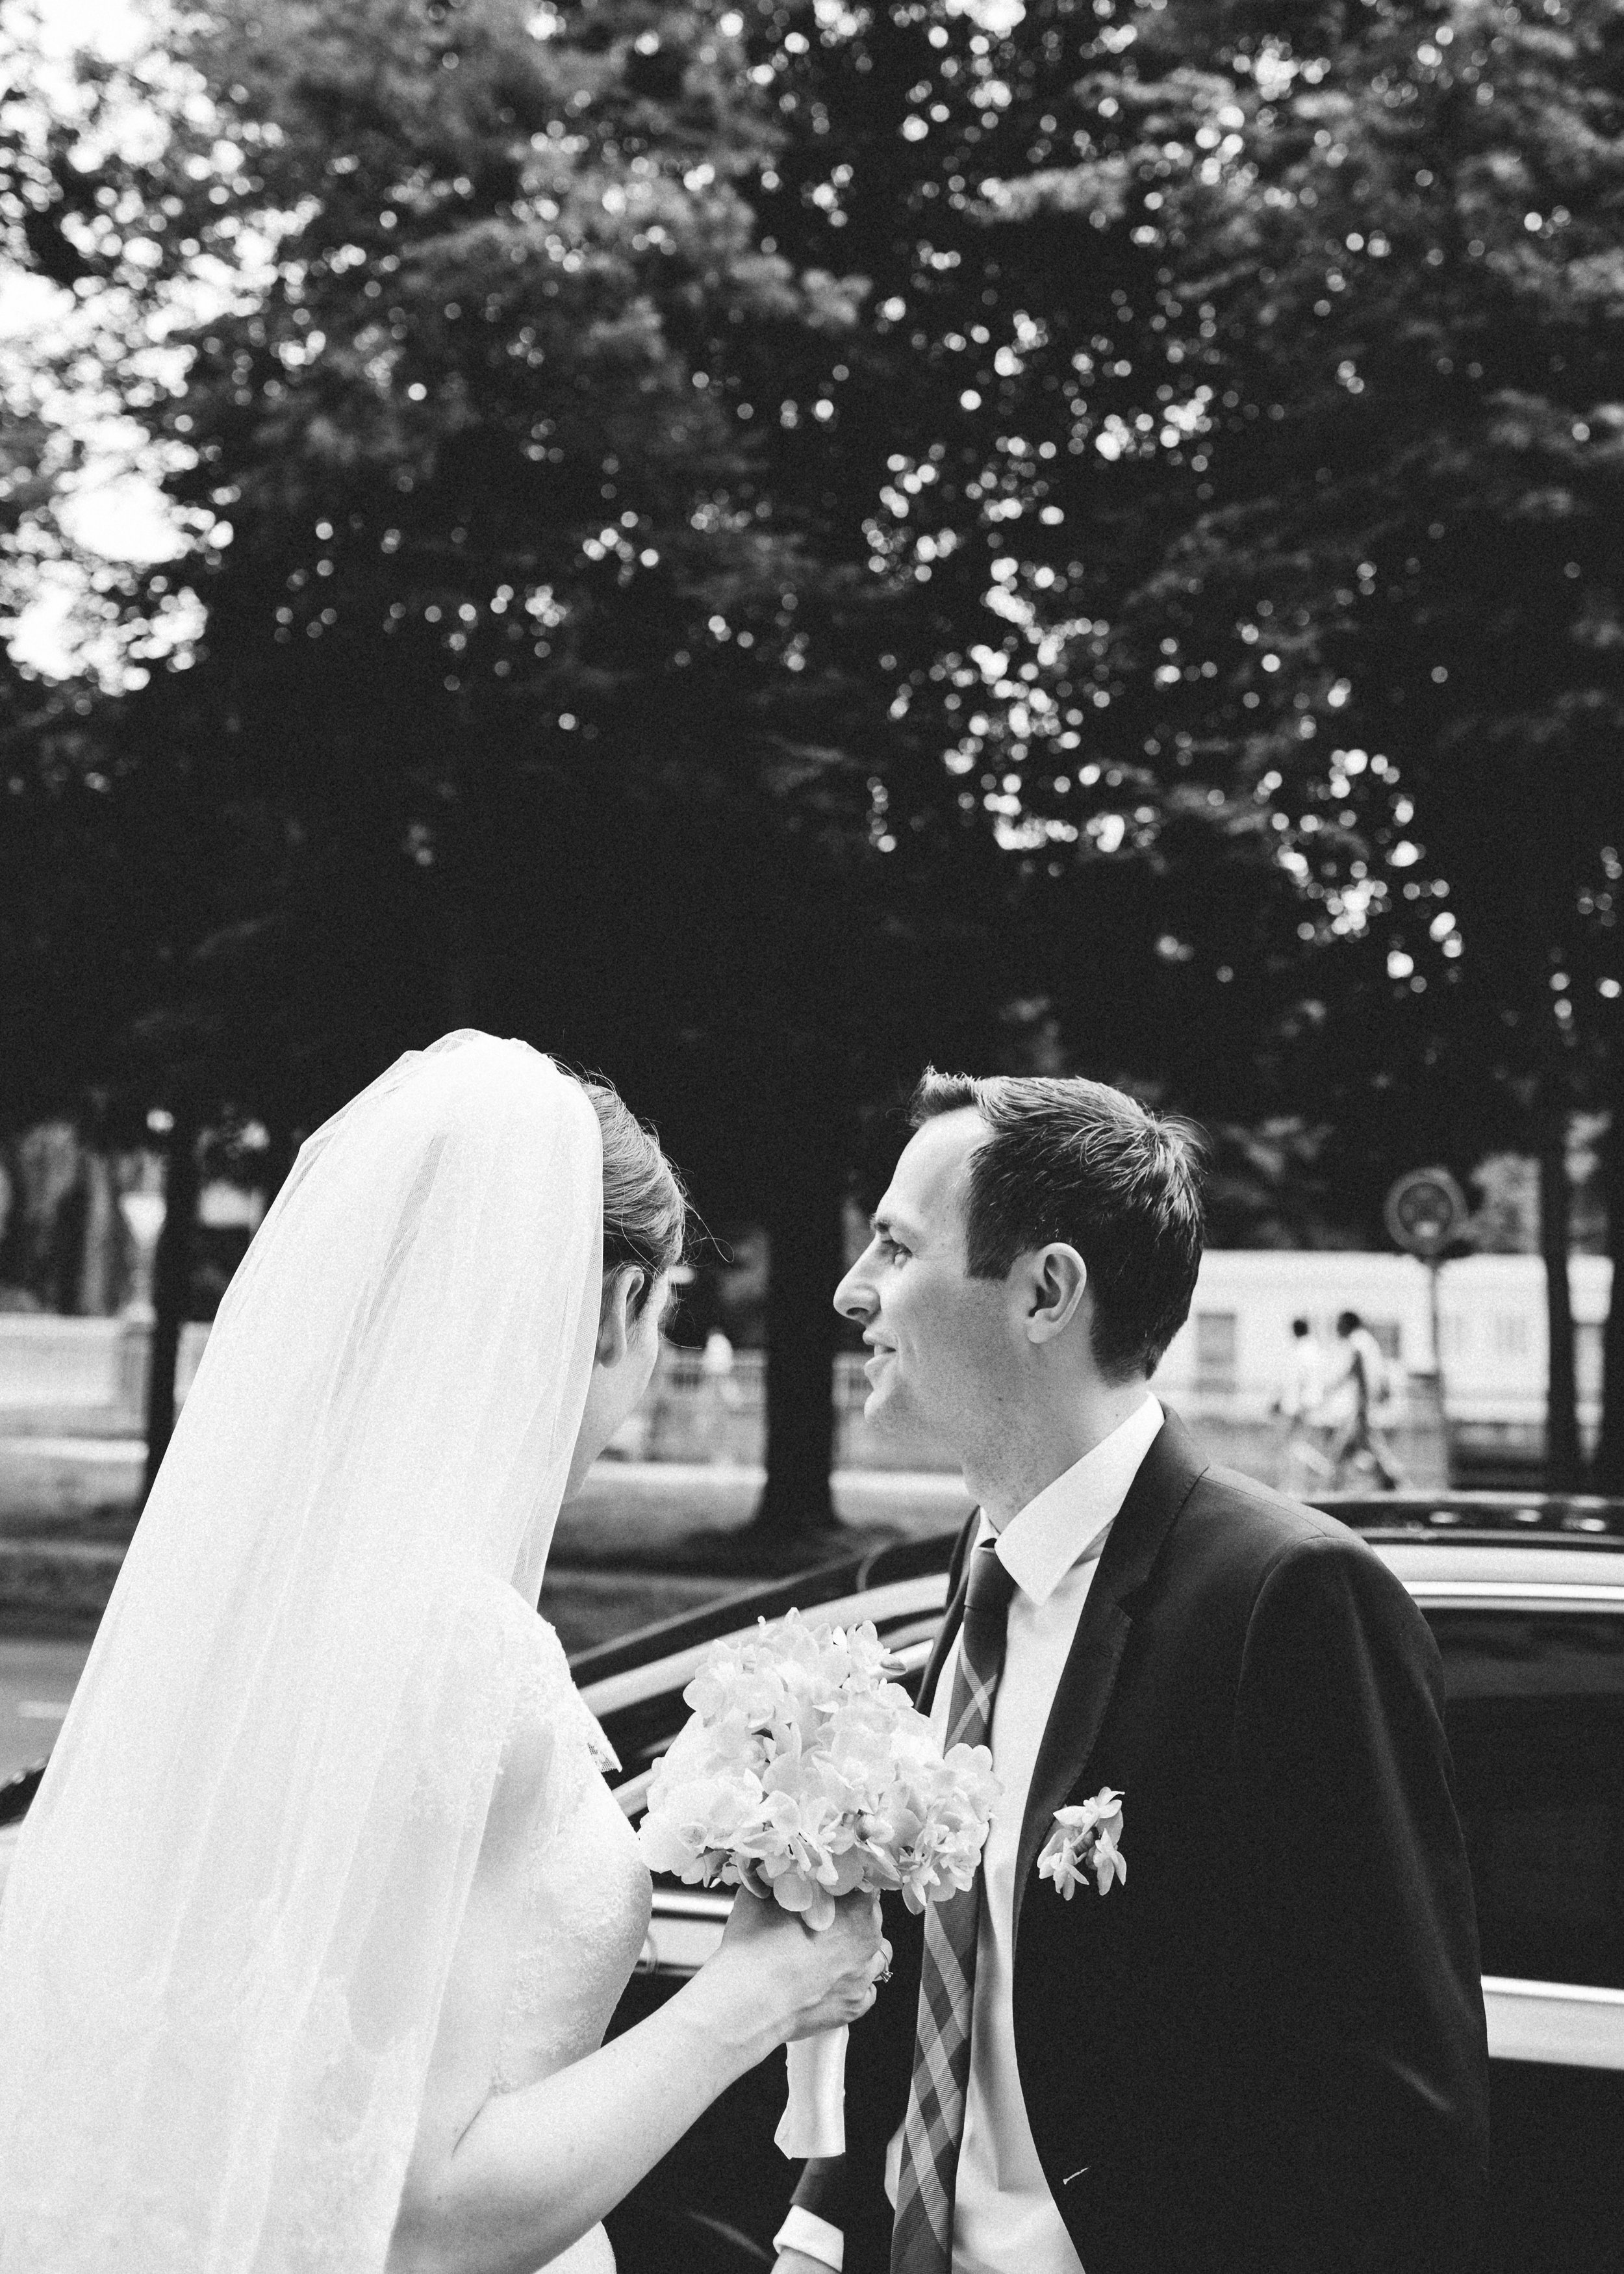 Blog - All about wedding and all the things I love to take pictures from. ENJOY